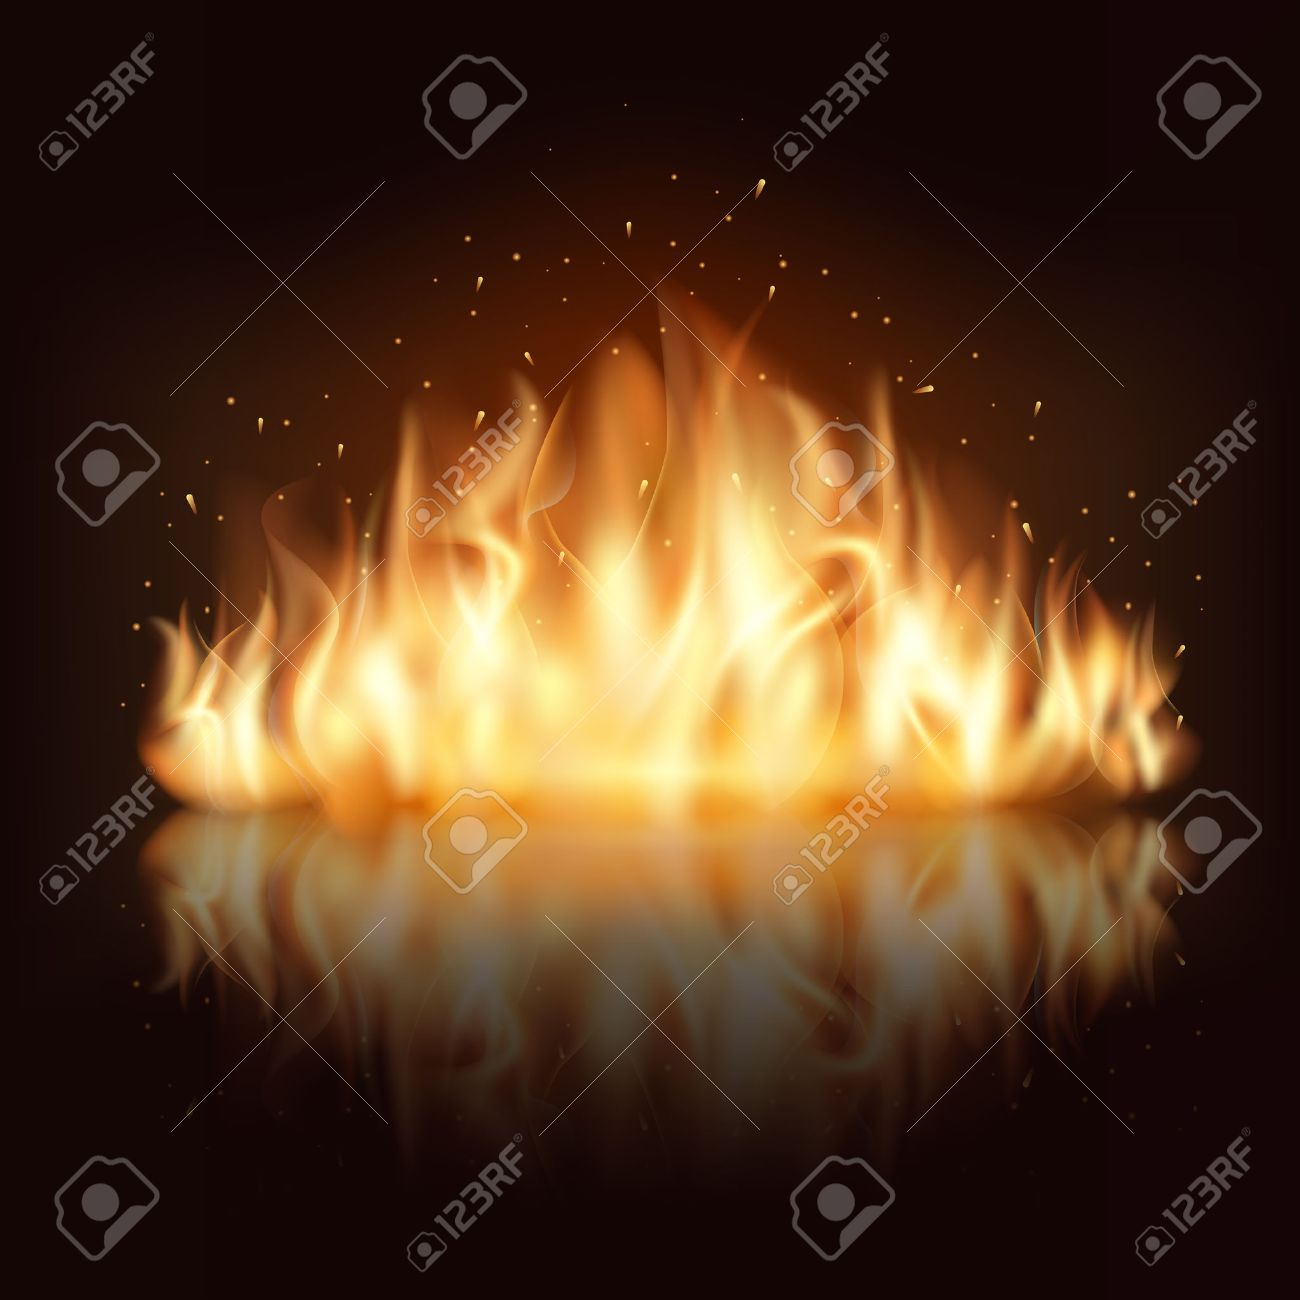 hight resolution of burn and hot warm and heat energy flammable flaming